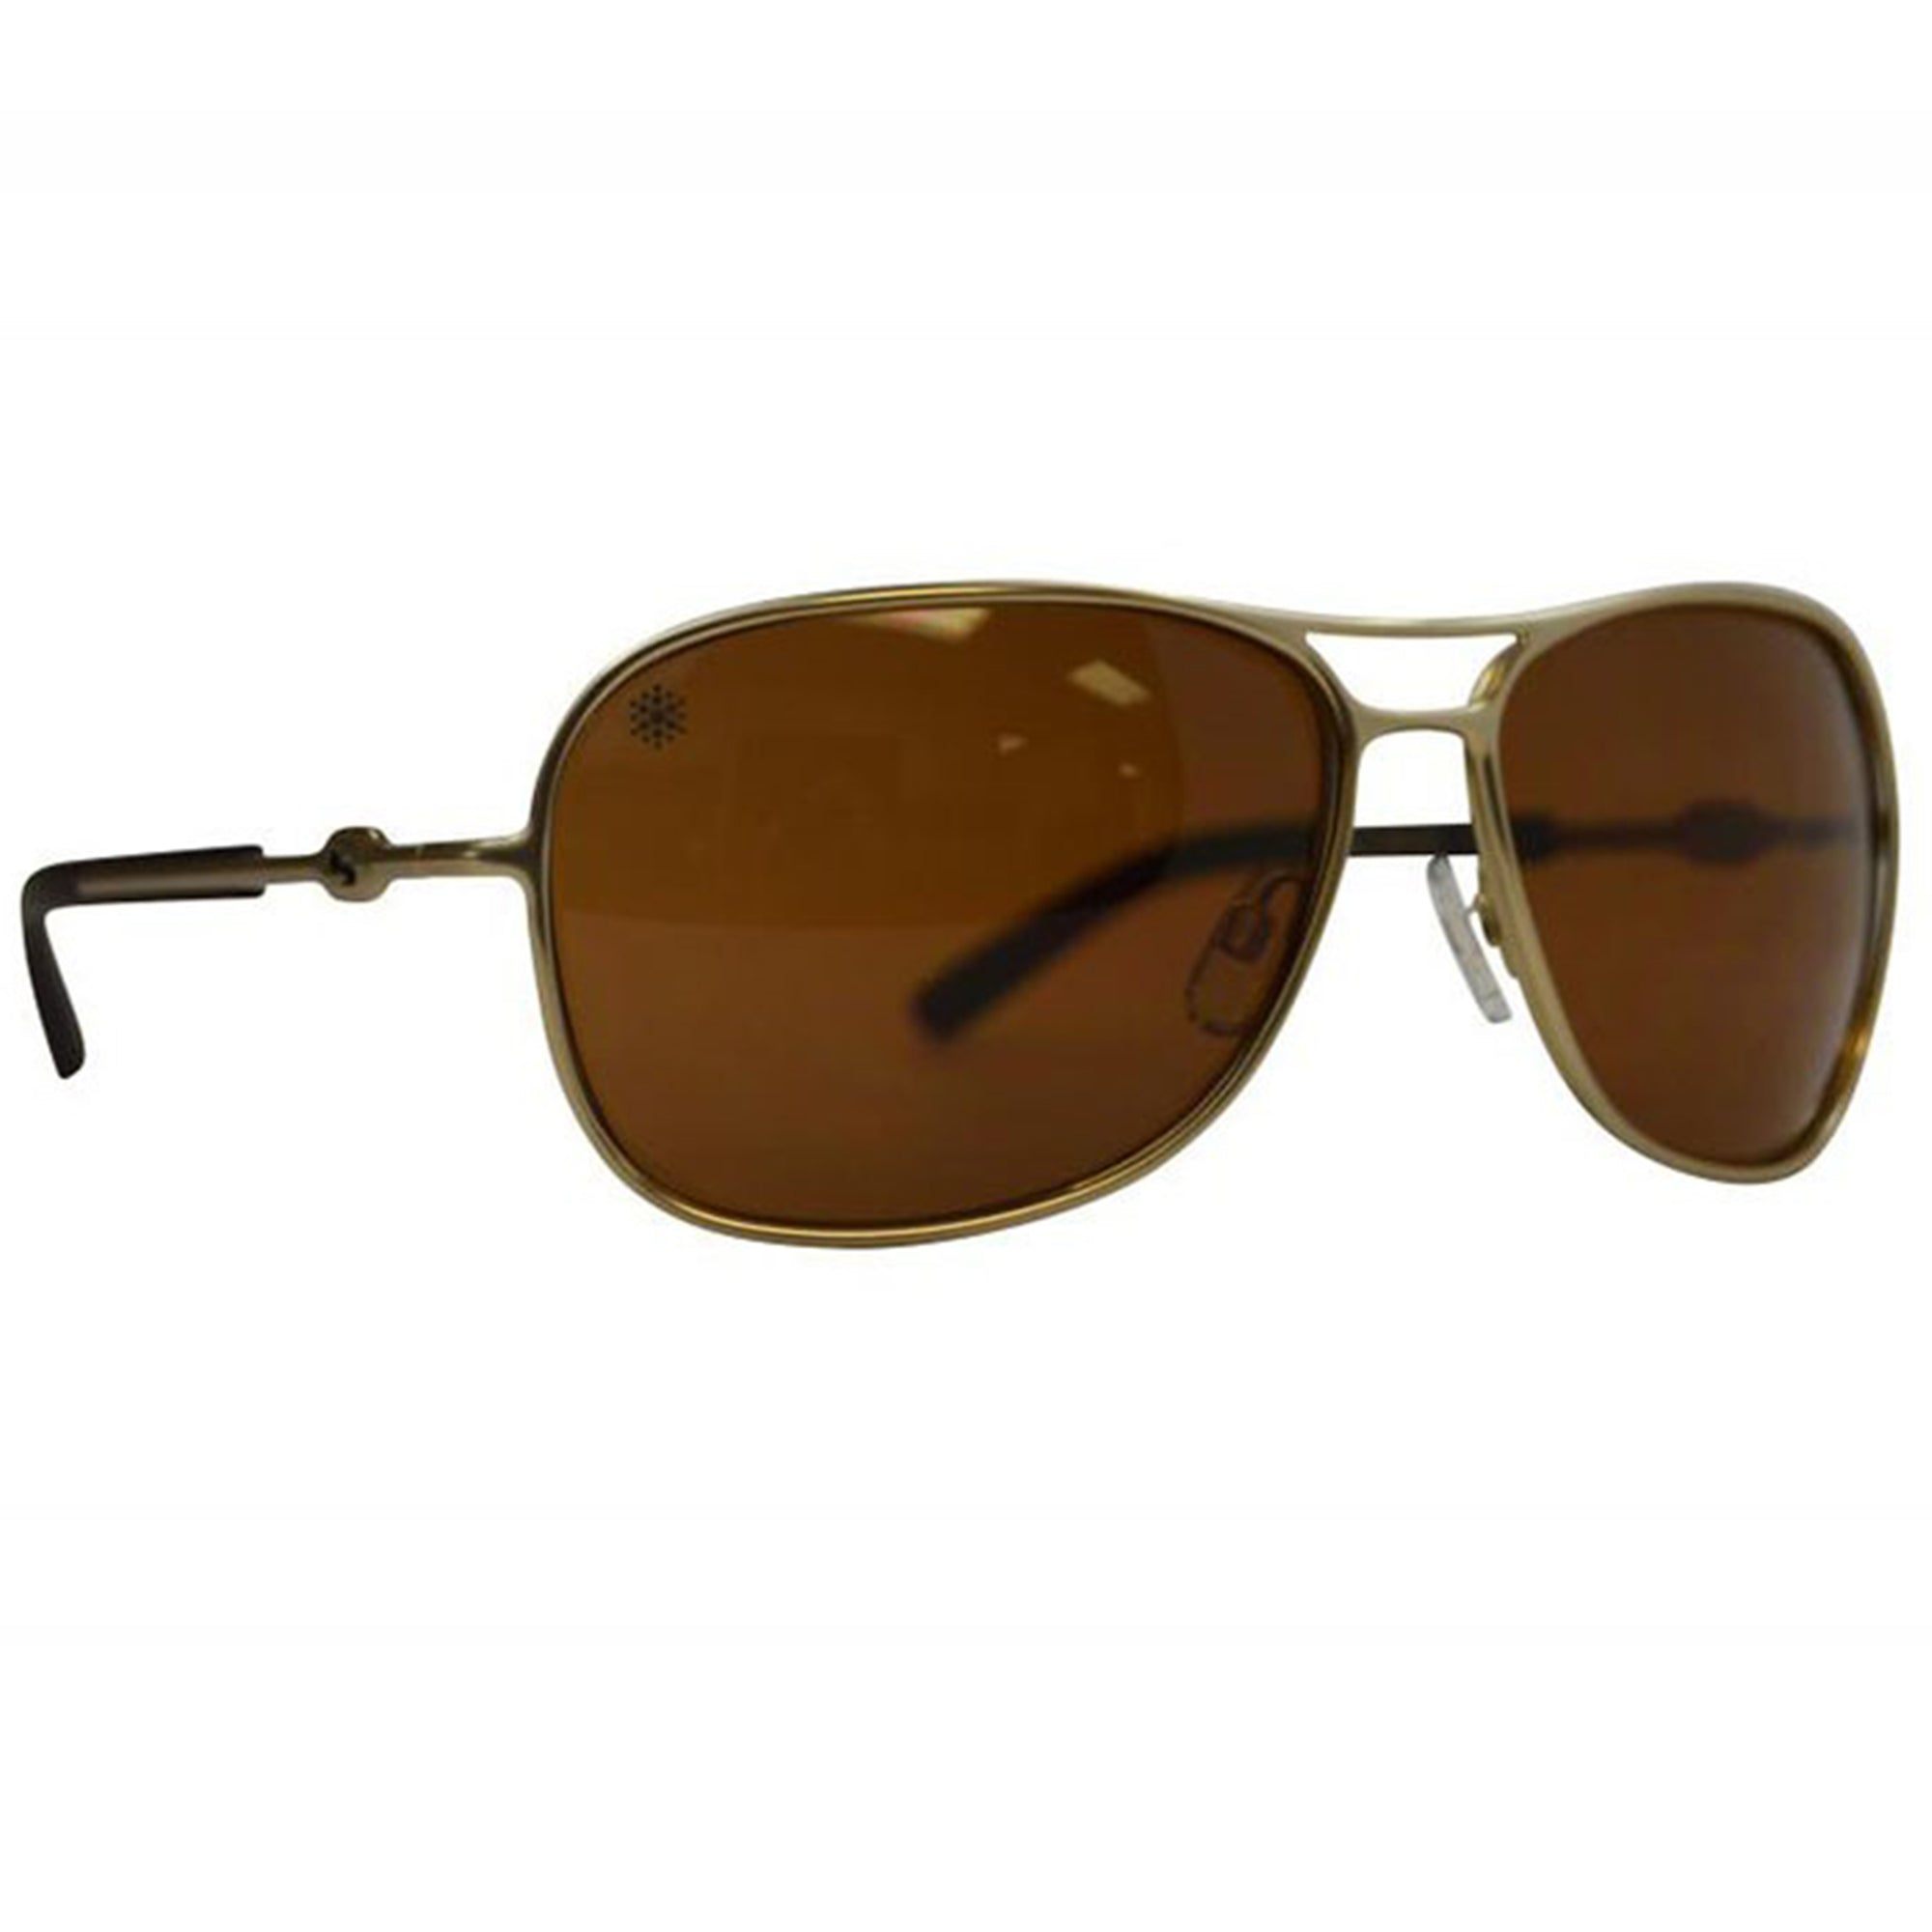 438ccf6e878e Sundog Stance Sunglasses - GOLD BROWN - Golf Anything US